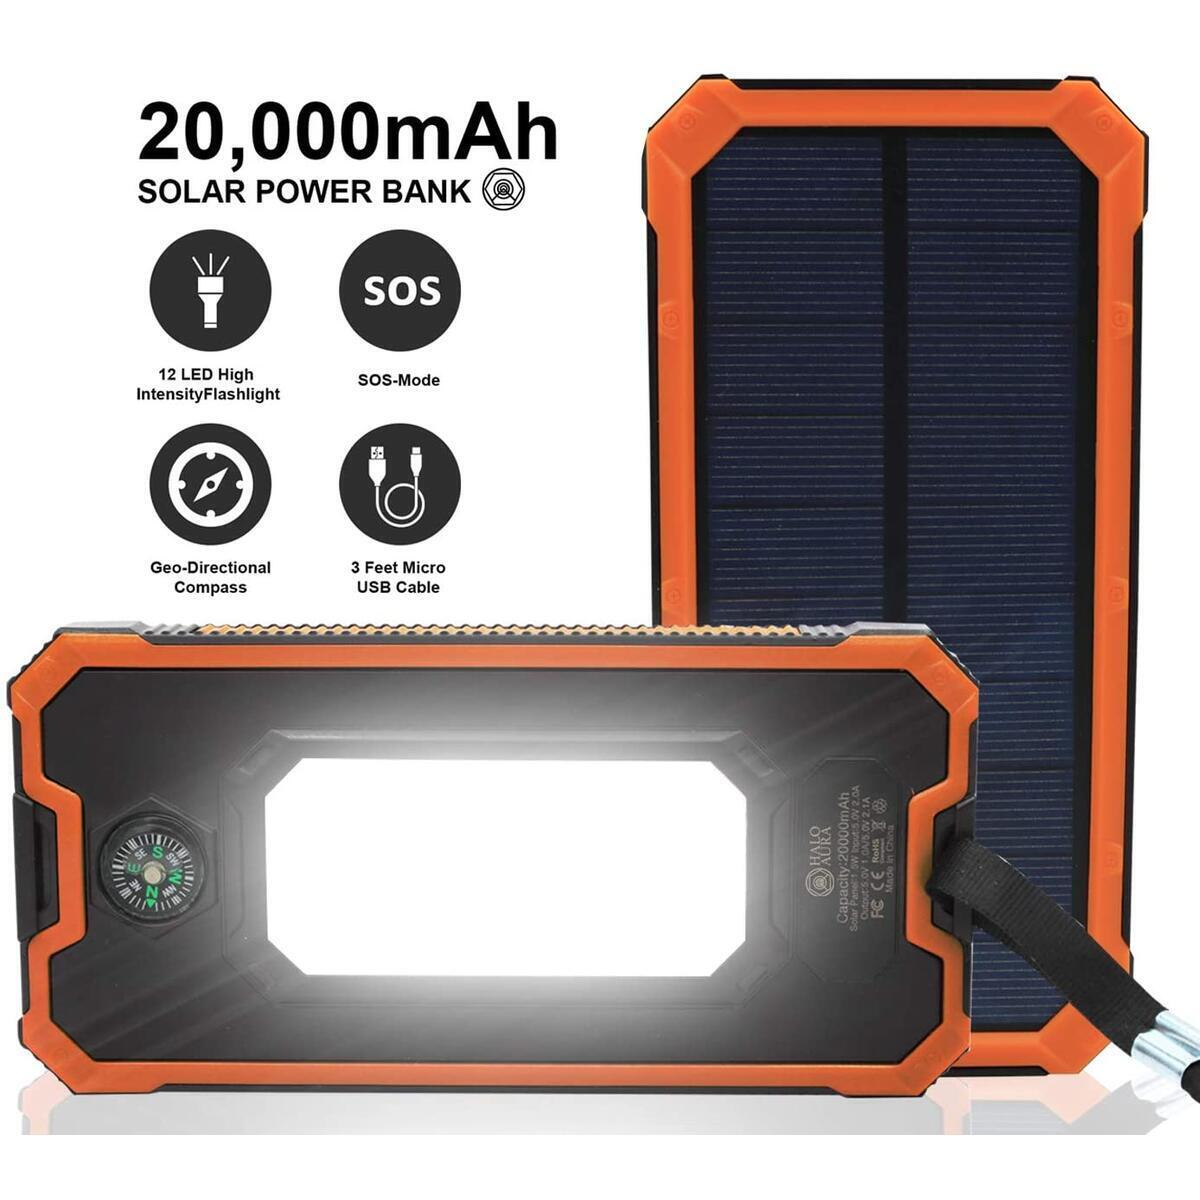 Solar Charger 20,000mAh, Halo Aura Portable Dual USB Solar Battery Charger External Battery Pack Phone Charger Power Bank with Flashlight for Smartphones Tablet Camera